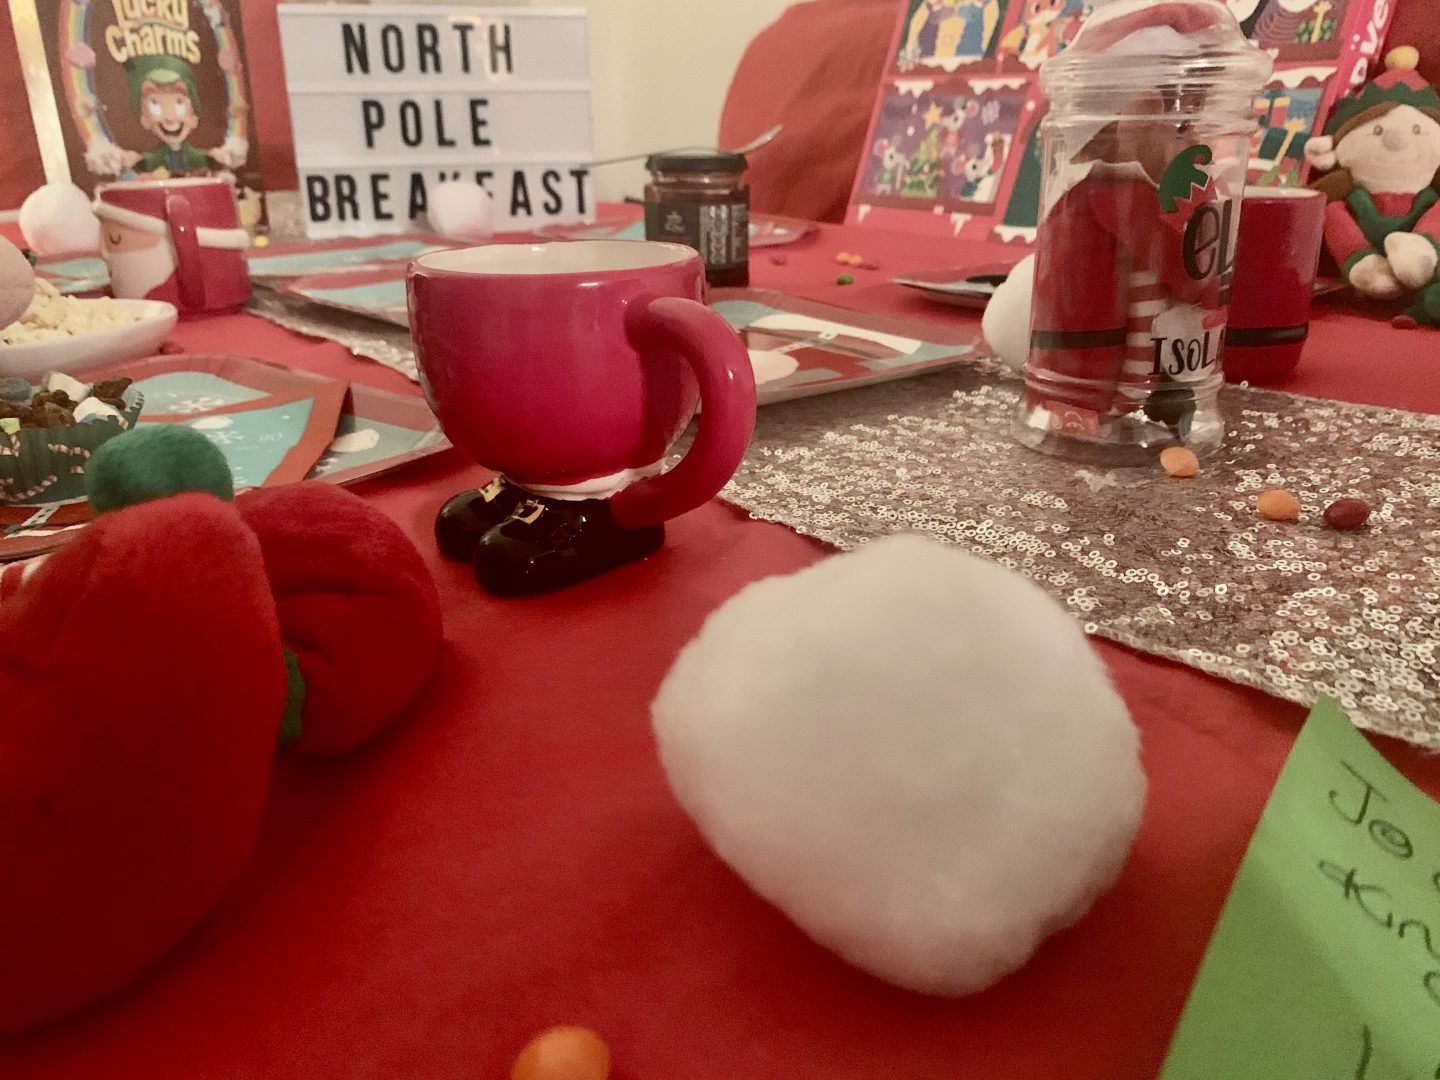 Fake snow balls for our north pole breakfast ideas